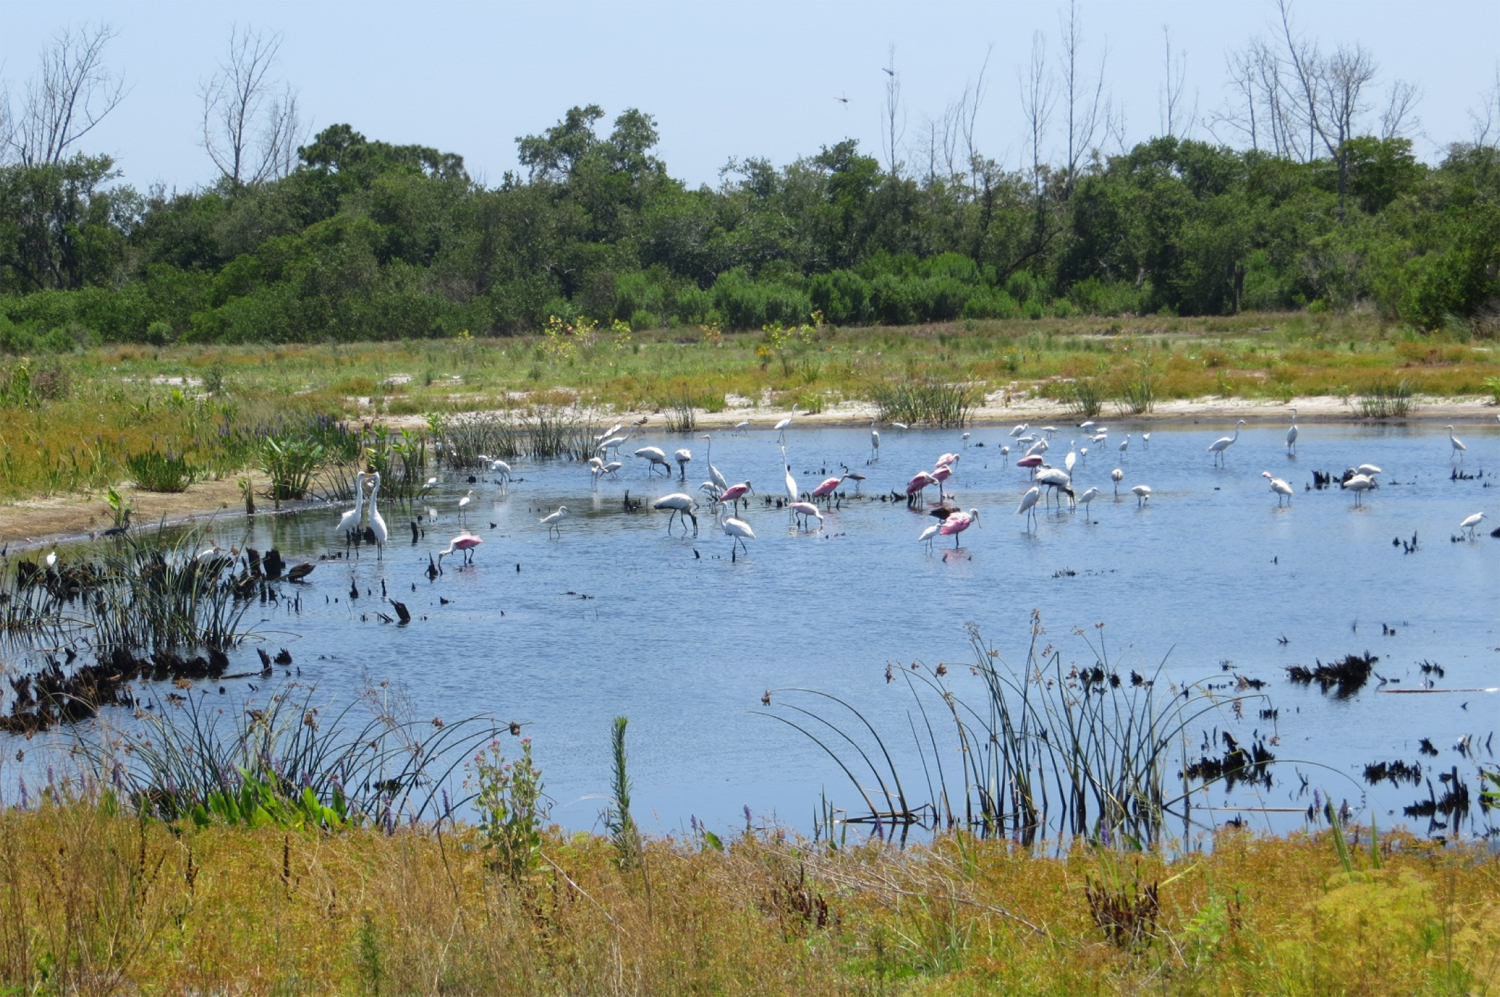 The Perico Preserve now hosts an assortment of birds. The area is on several migratory routes, making it even more important. A rookery in the center of a pond and bird-viewing platforms allow the public to enjoy seeing the birds without disturbing them.